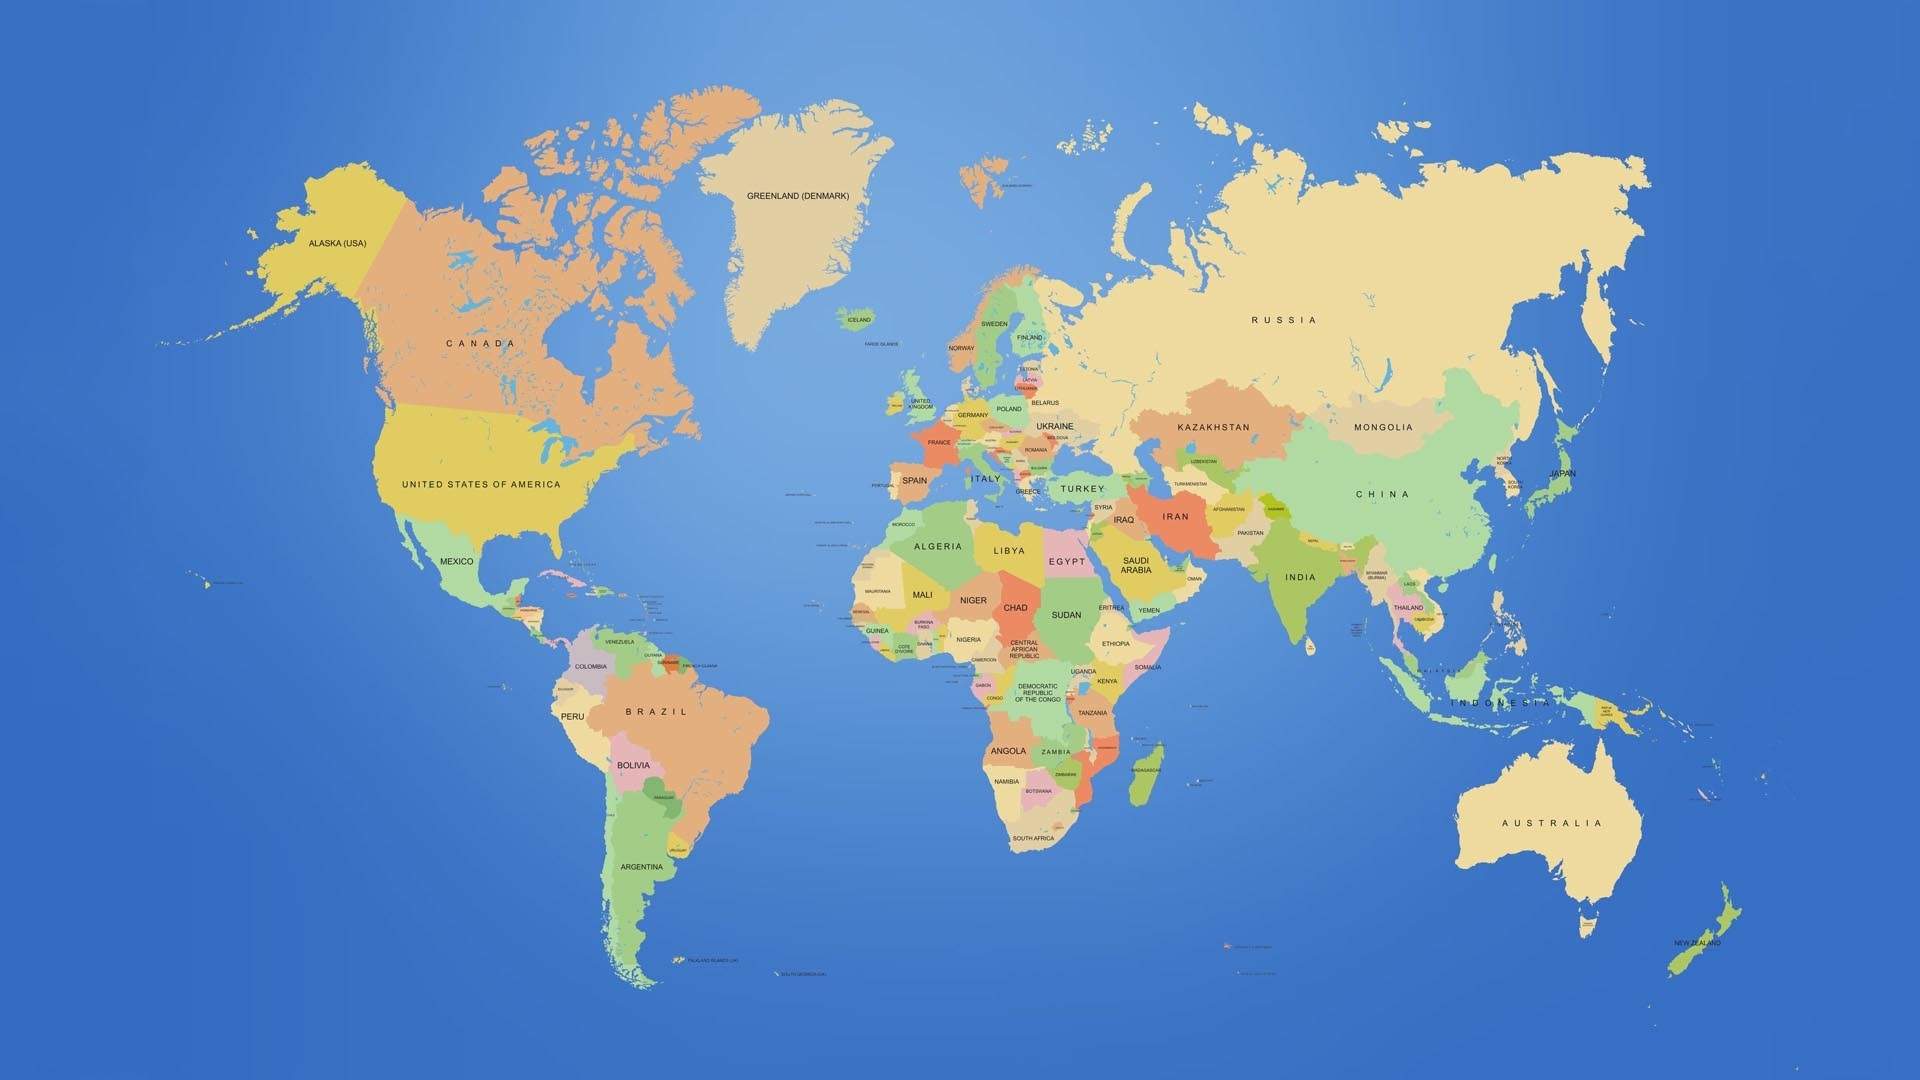 10 best world map laptop wallpaper full hd 19201080 for pc title world map wallpapers world map full 100 quality hd quality dimension 1920 x 1080 file type jpgjpeg gumiabroncs Choice Image